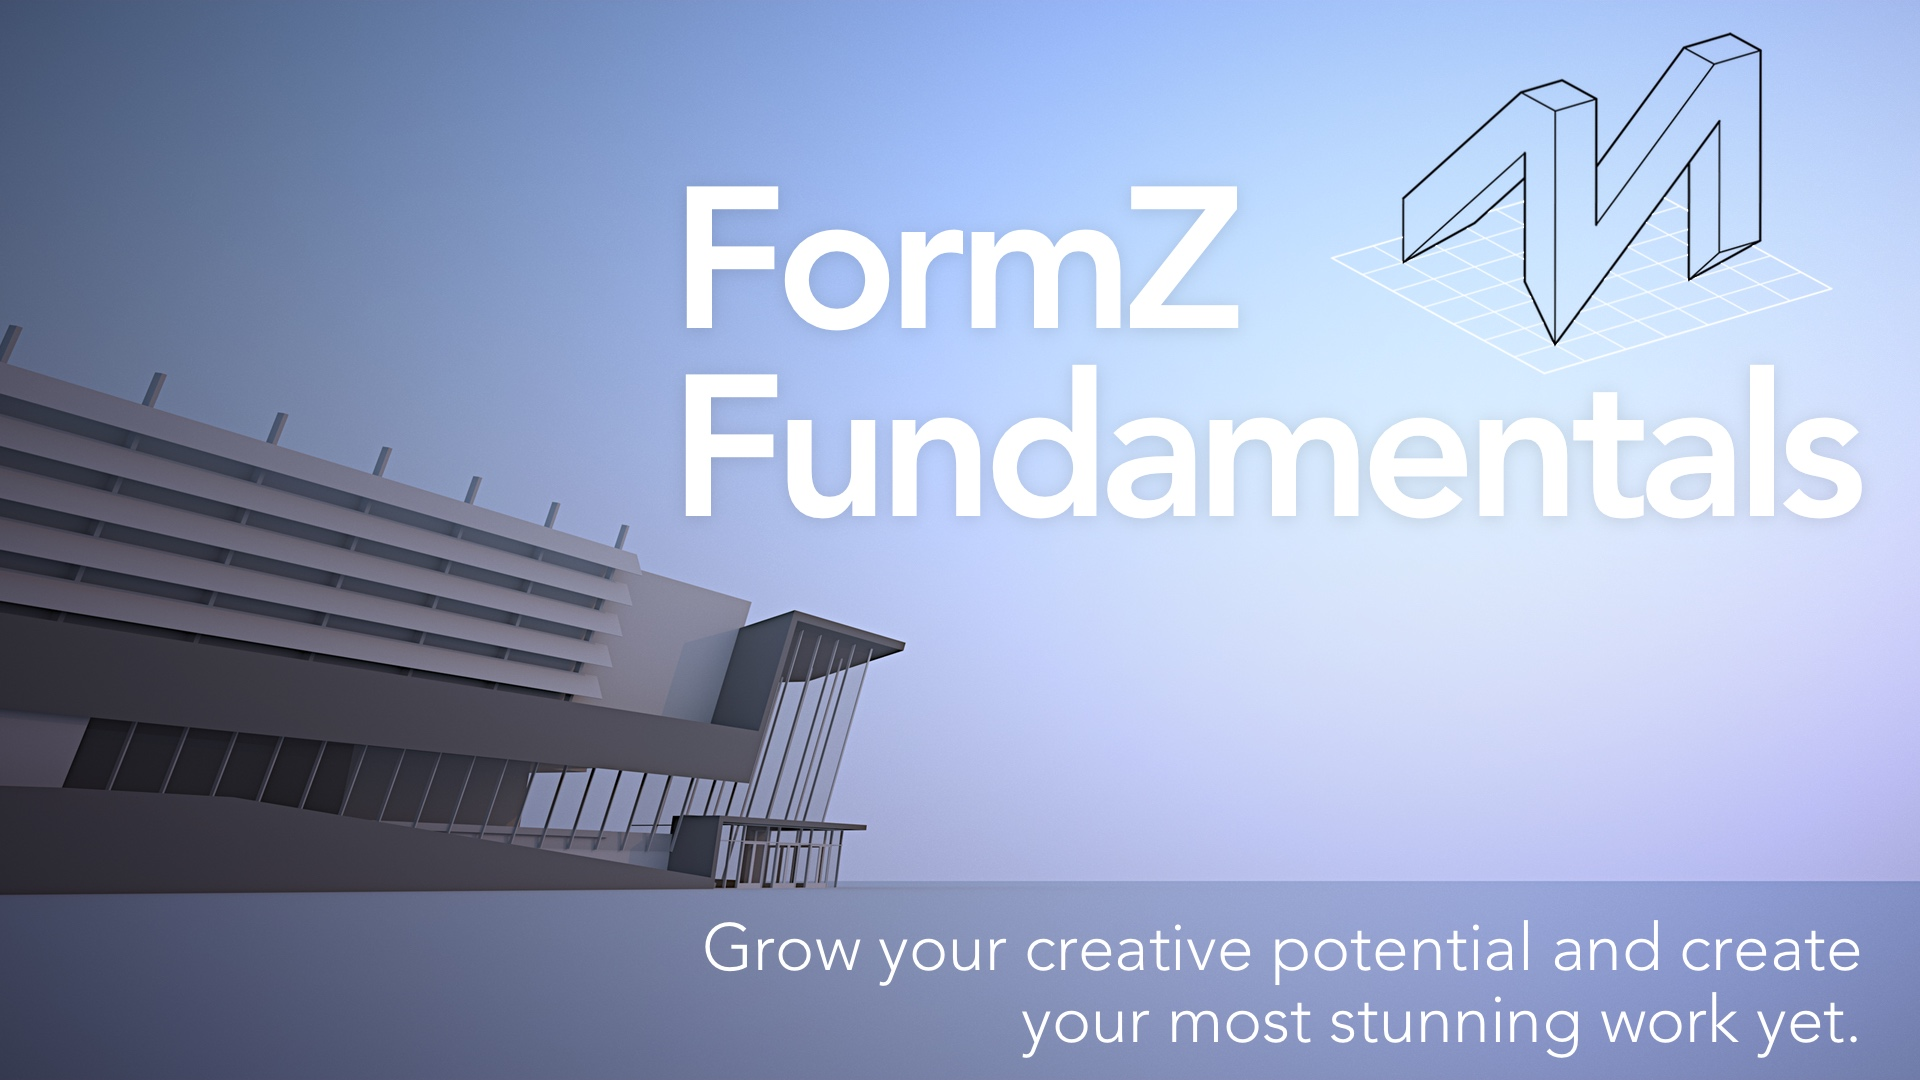 level-up your 3d modeling skills with forever acces to six+ hours of on-demand video training in form•Z.